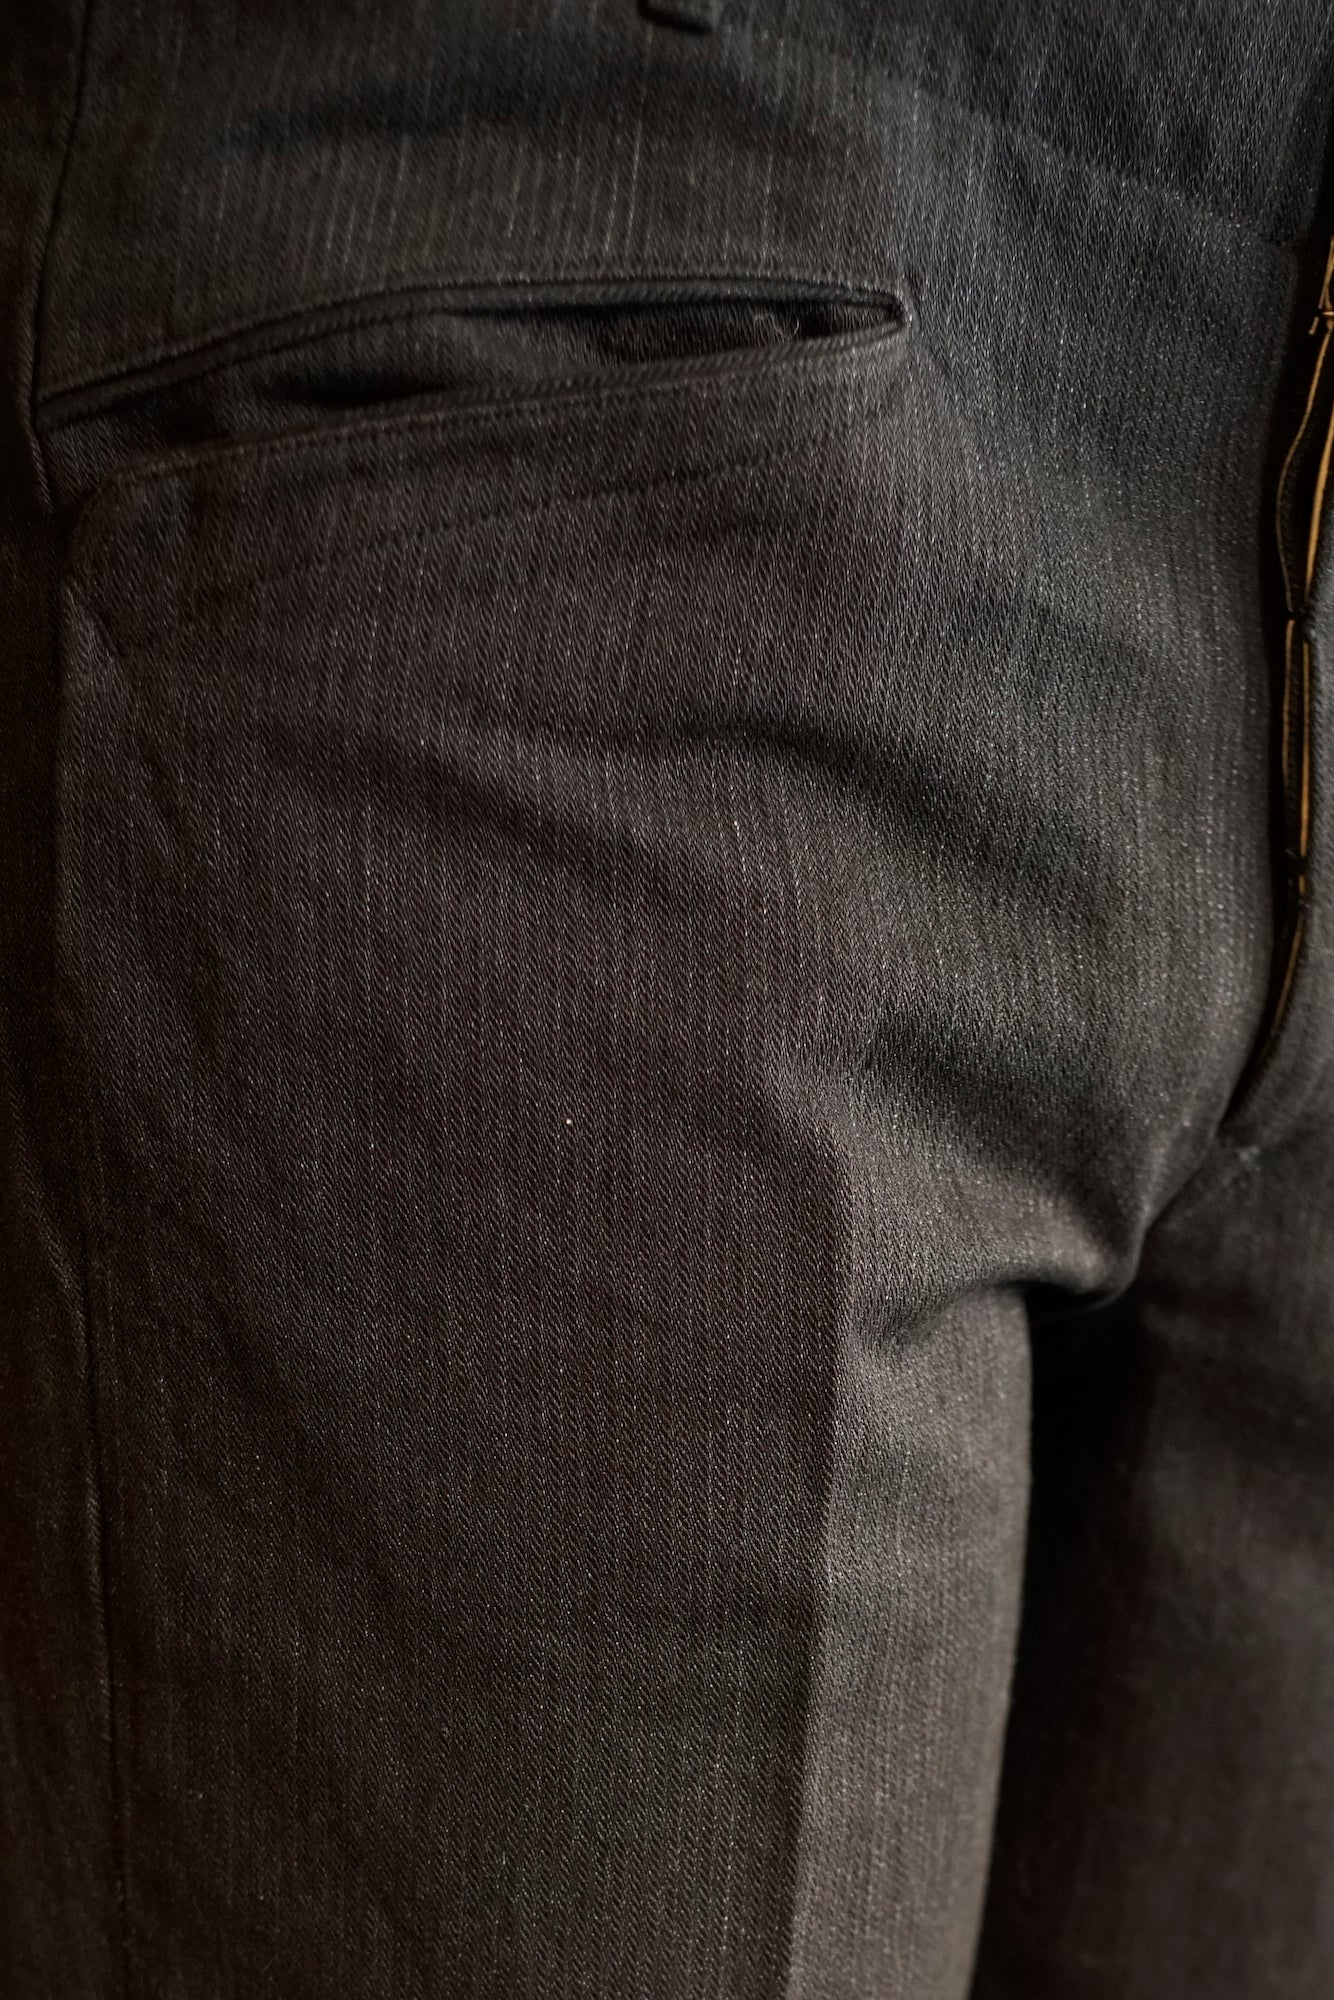 SLIT POCKET GRANDPA TROUSER - 201OJ-PT10